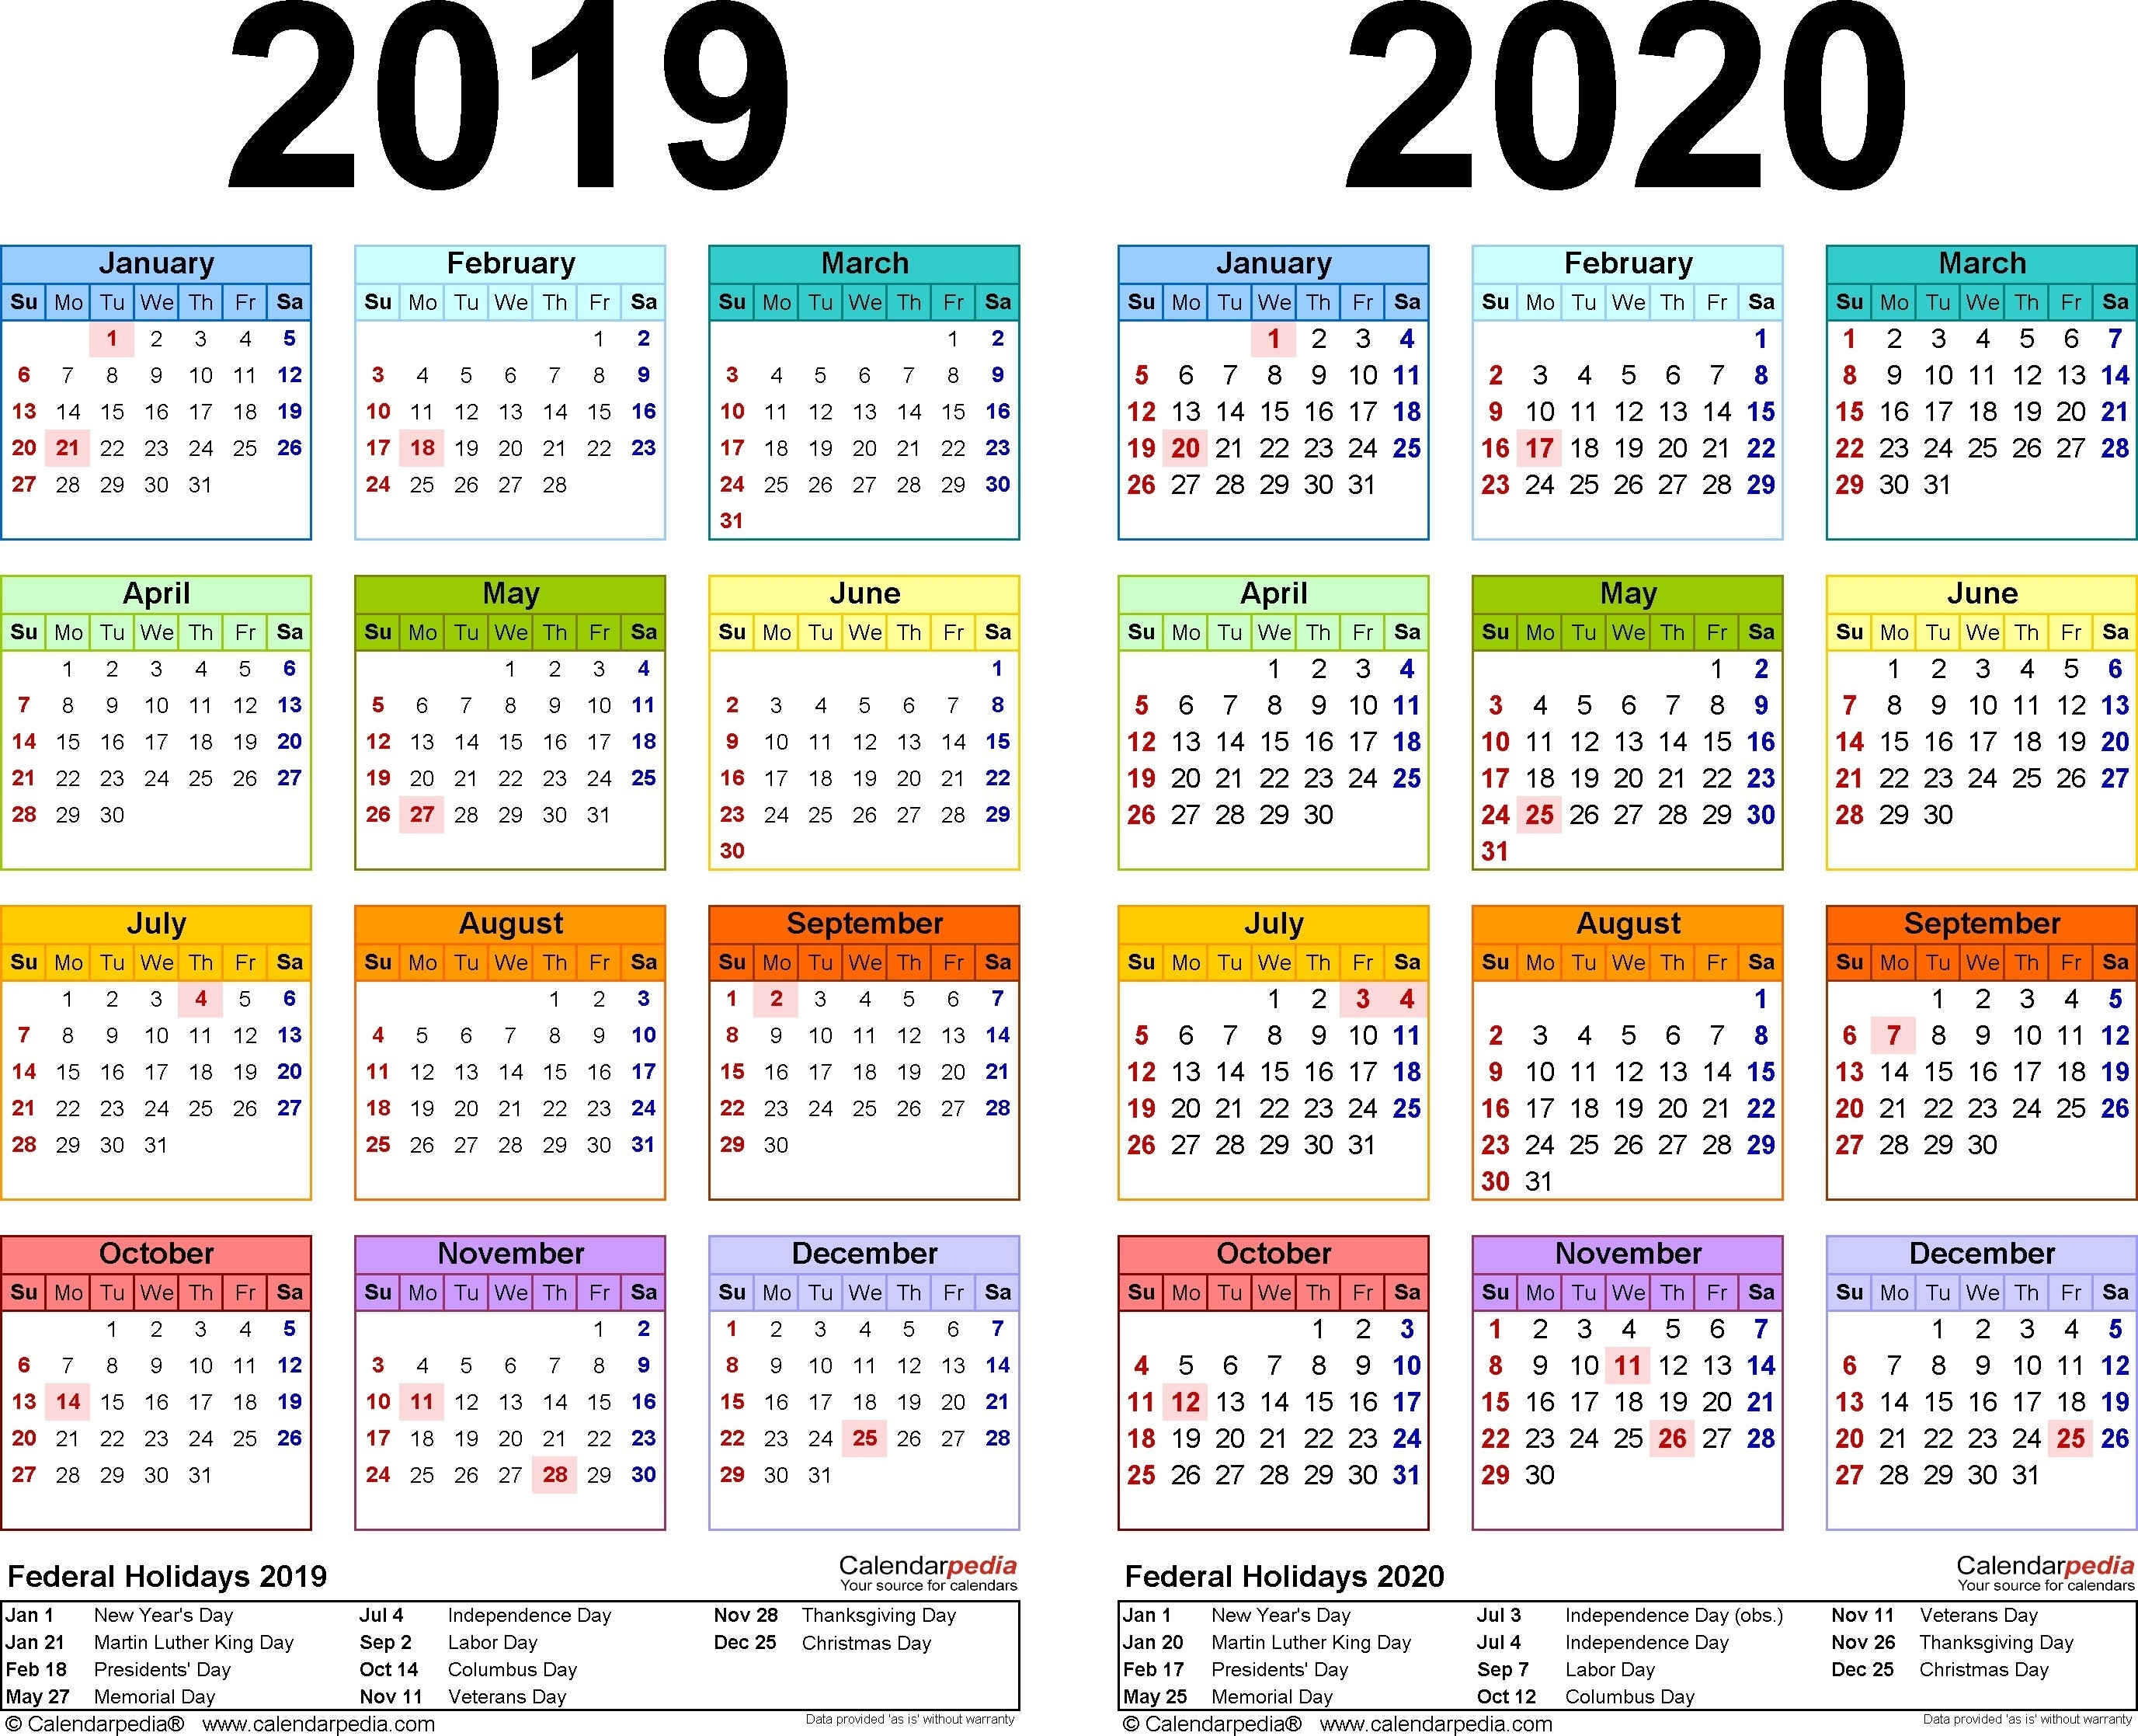 Calendar Holiday 2019 Philippines Election Senator - Calendaro-Holidays In The Philippines 2020